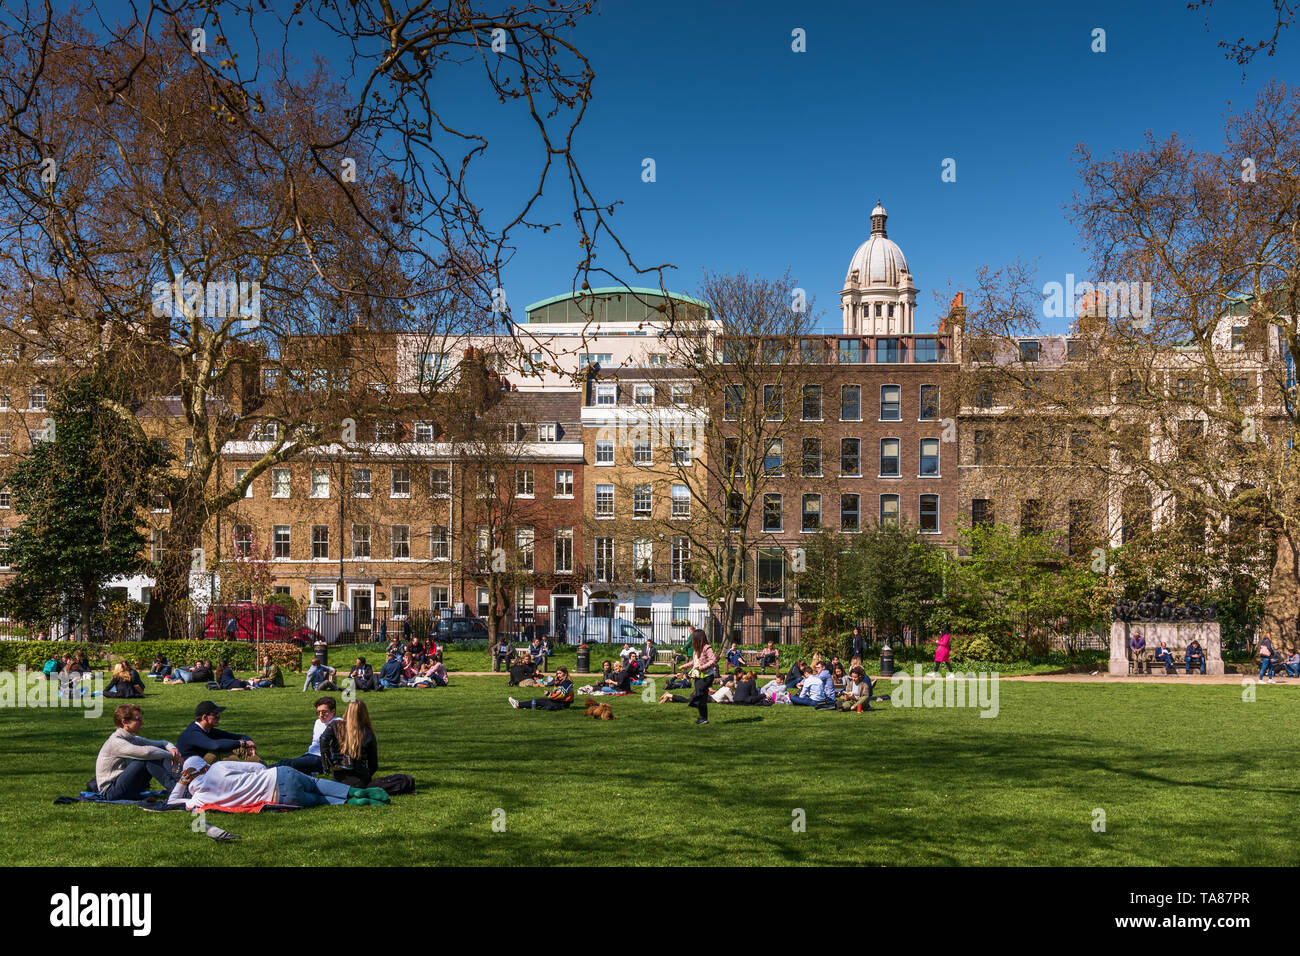 Lincoln's Inn Fields, London, UK Stockfoto